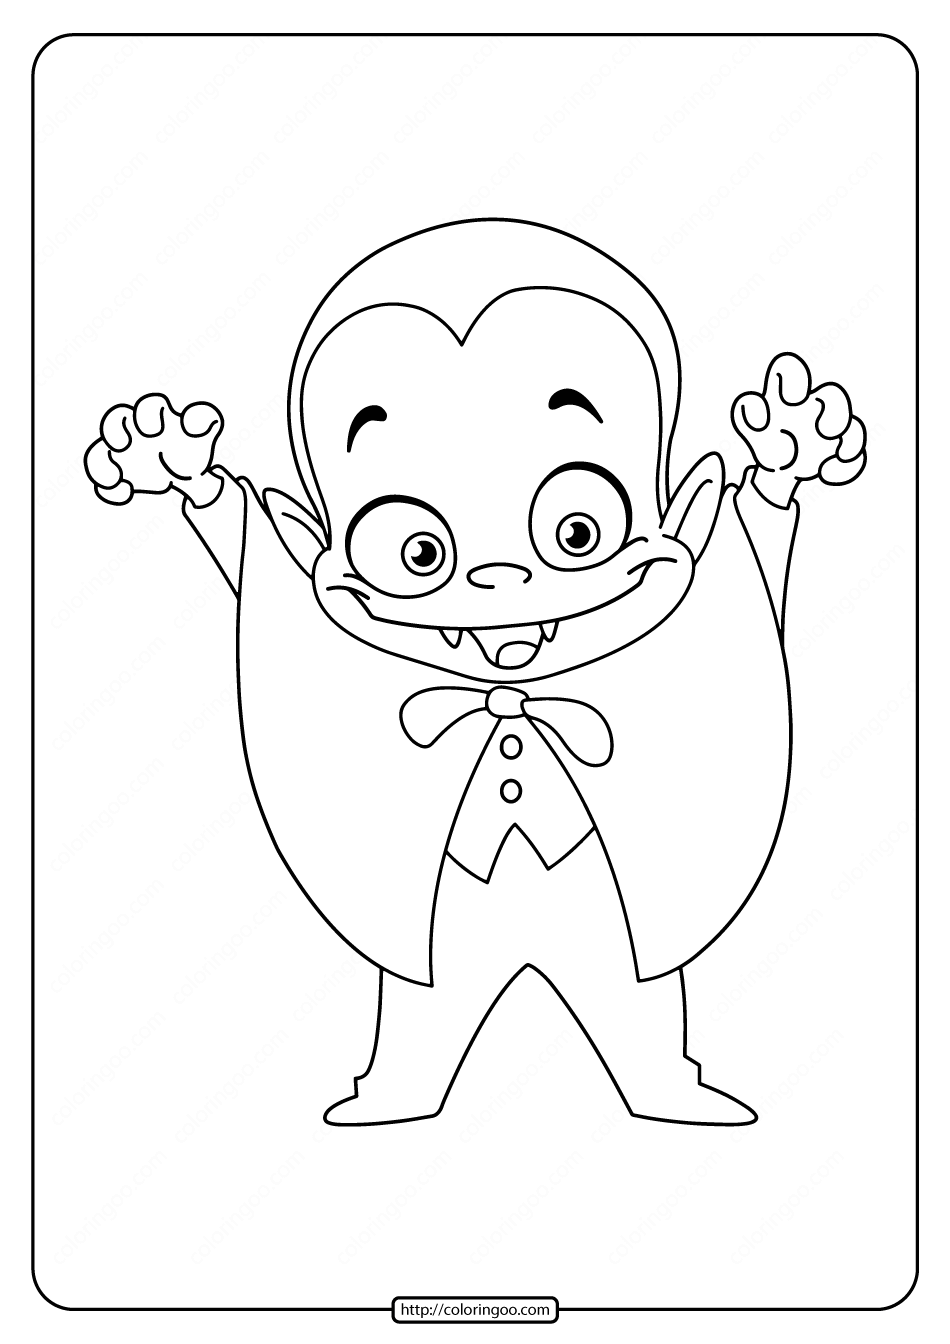 vampire coloring pages free printable vampire coloring pages pages coloring vampire